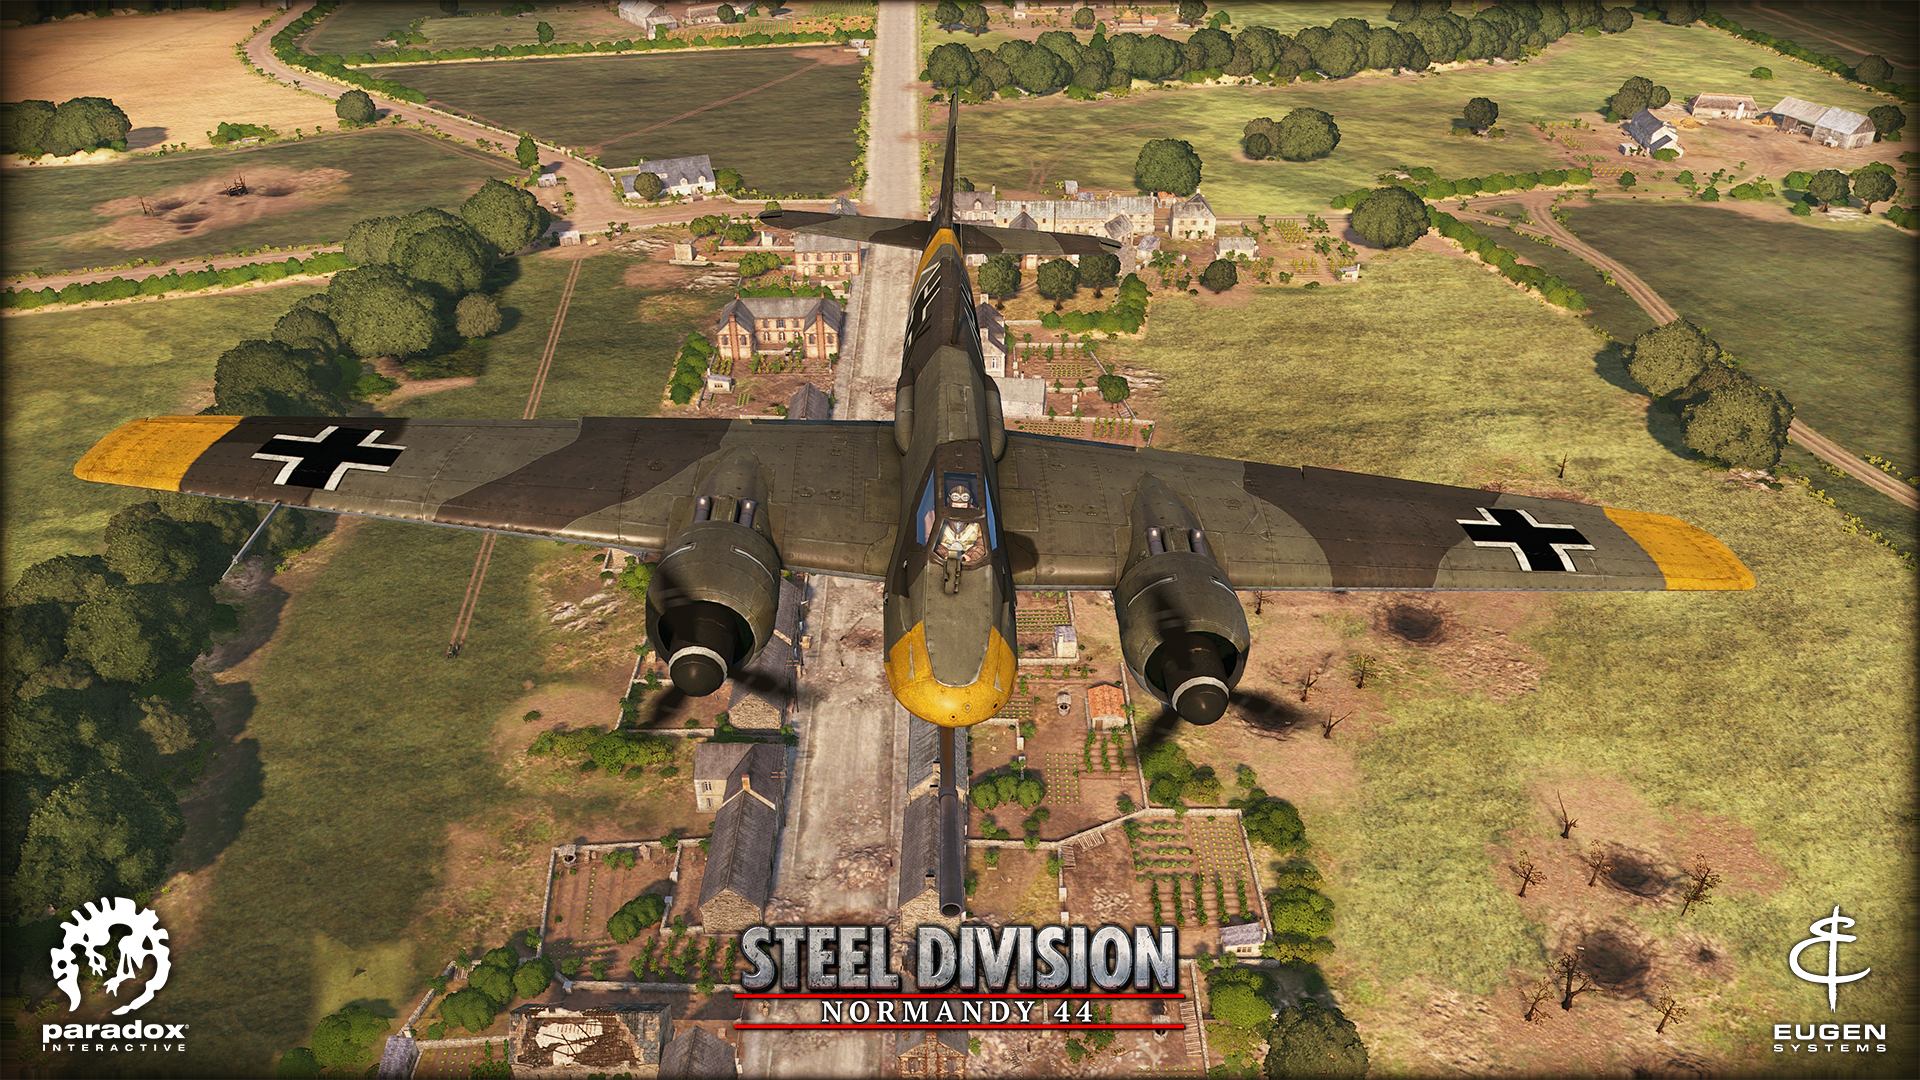 Steel Division: Normandy 44 - HS 129 B3